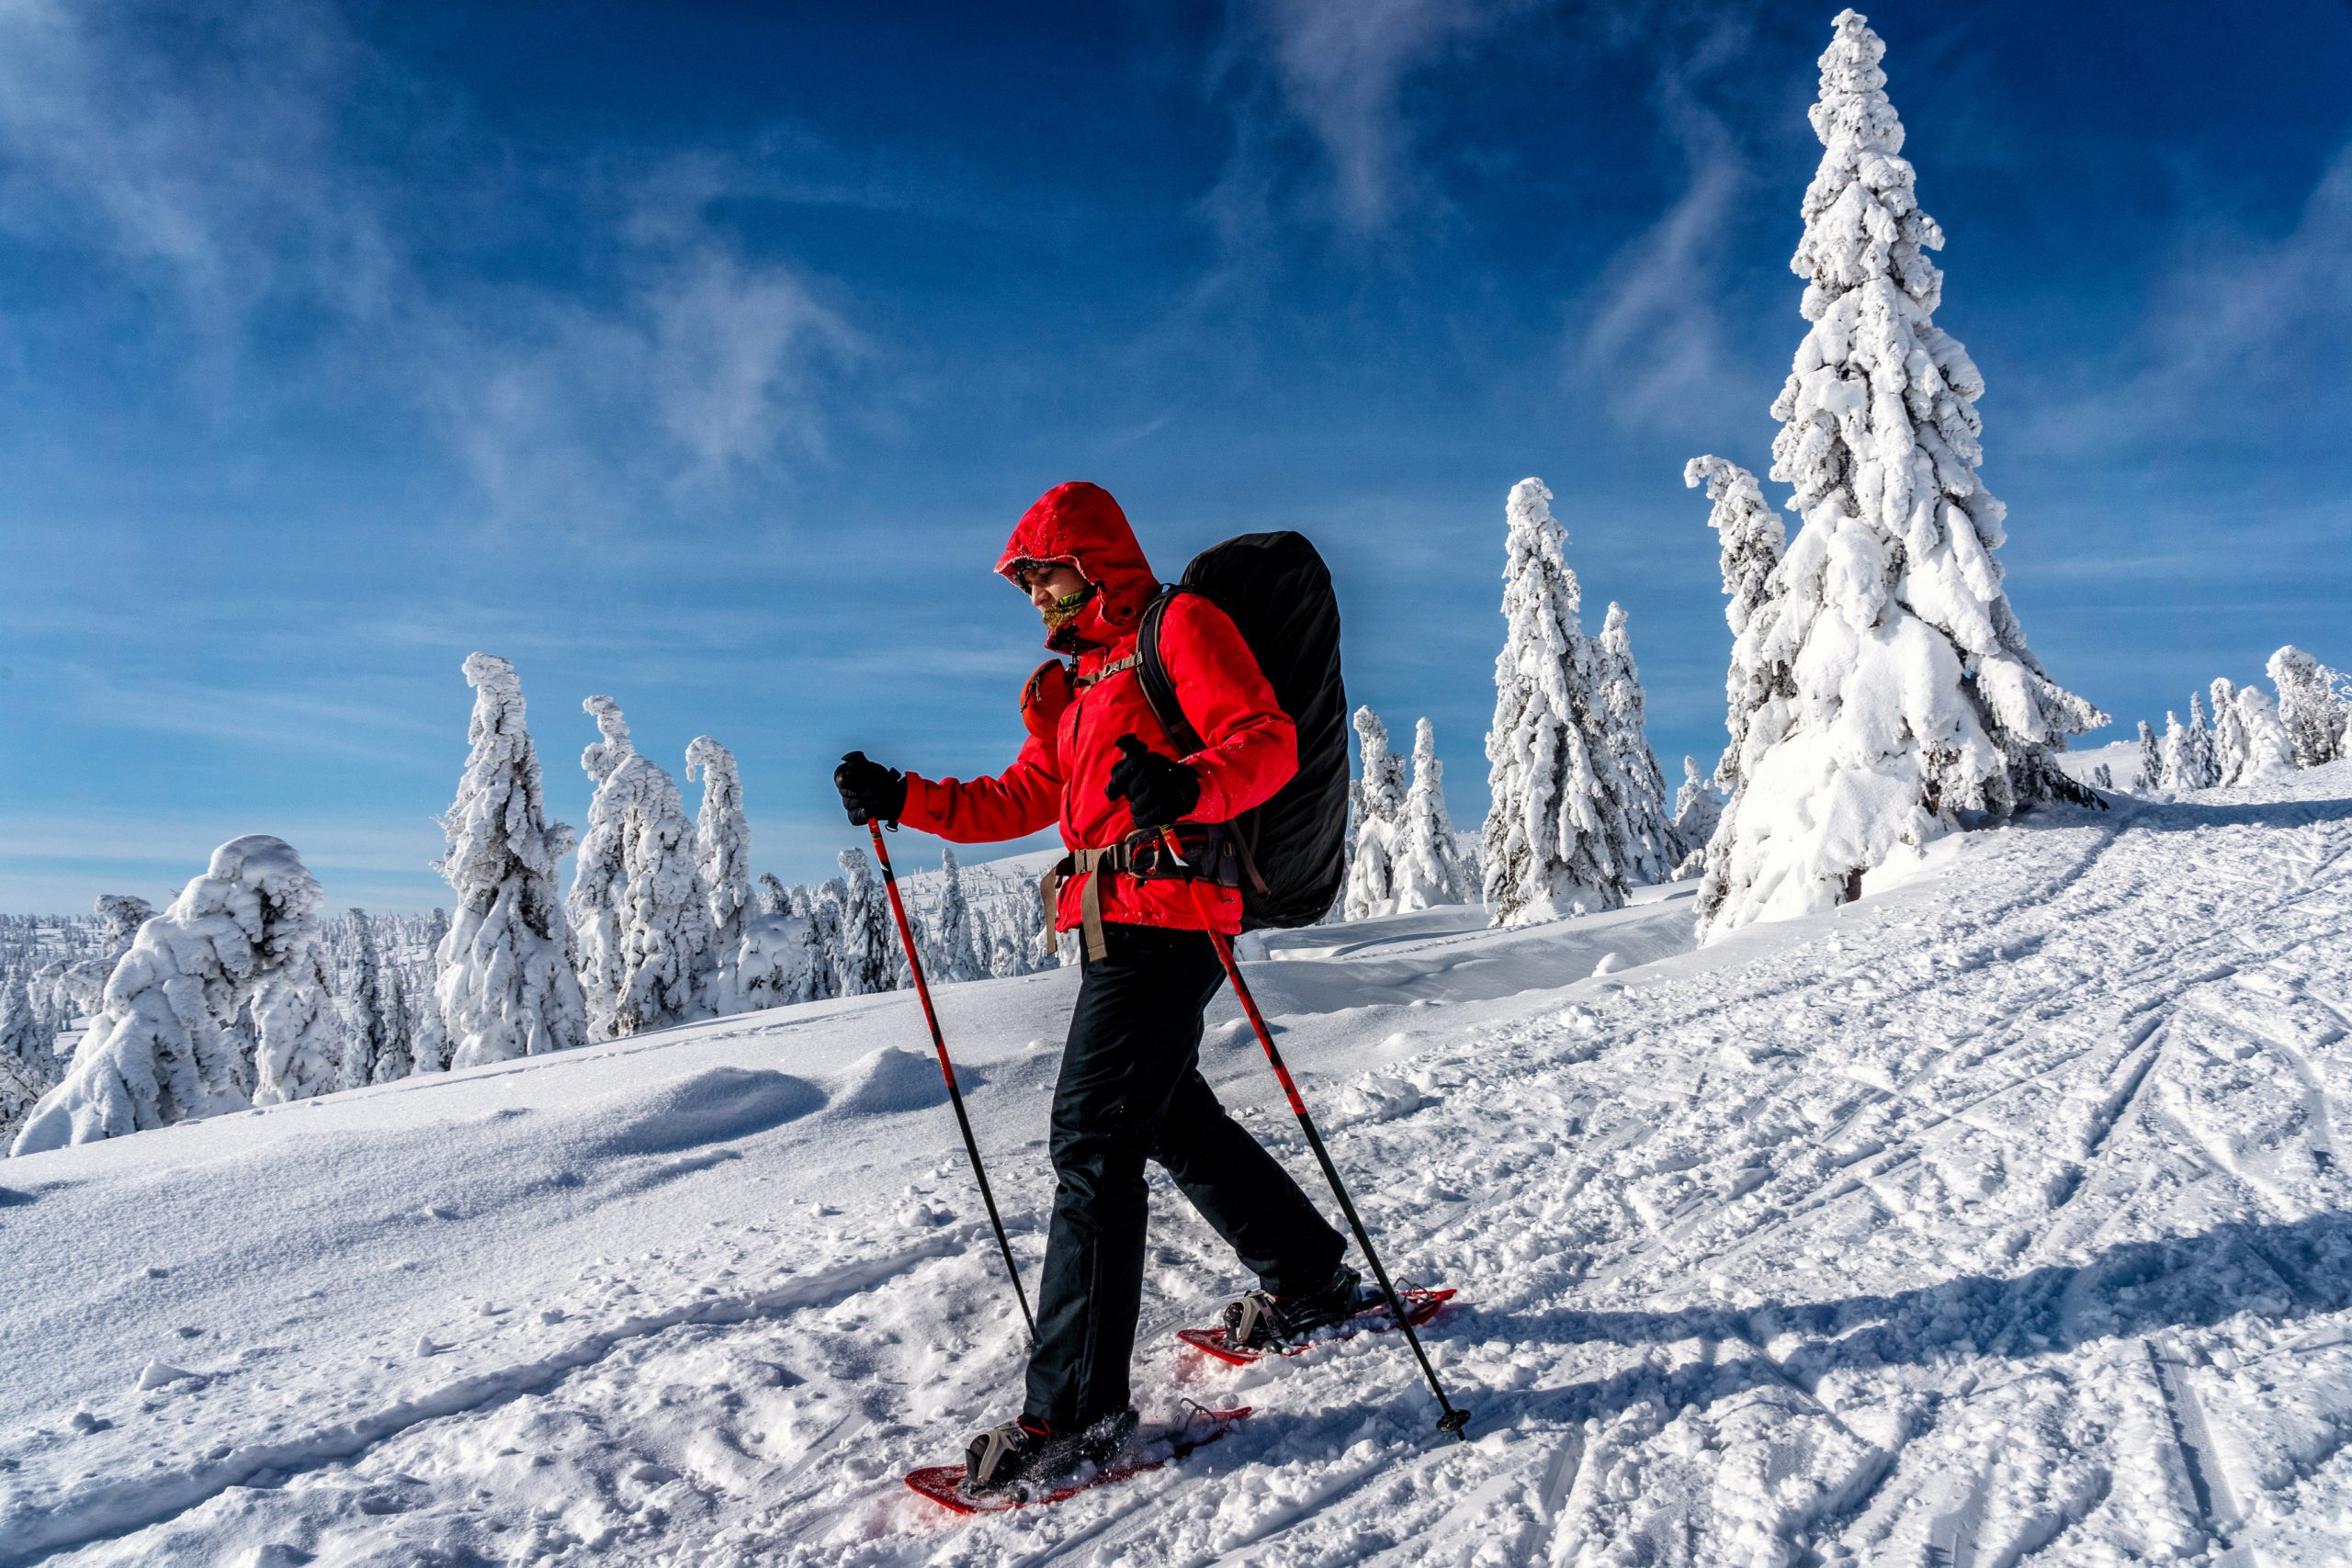 Man in red jacket snowshoeing